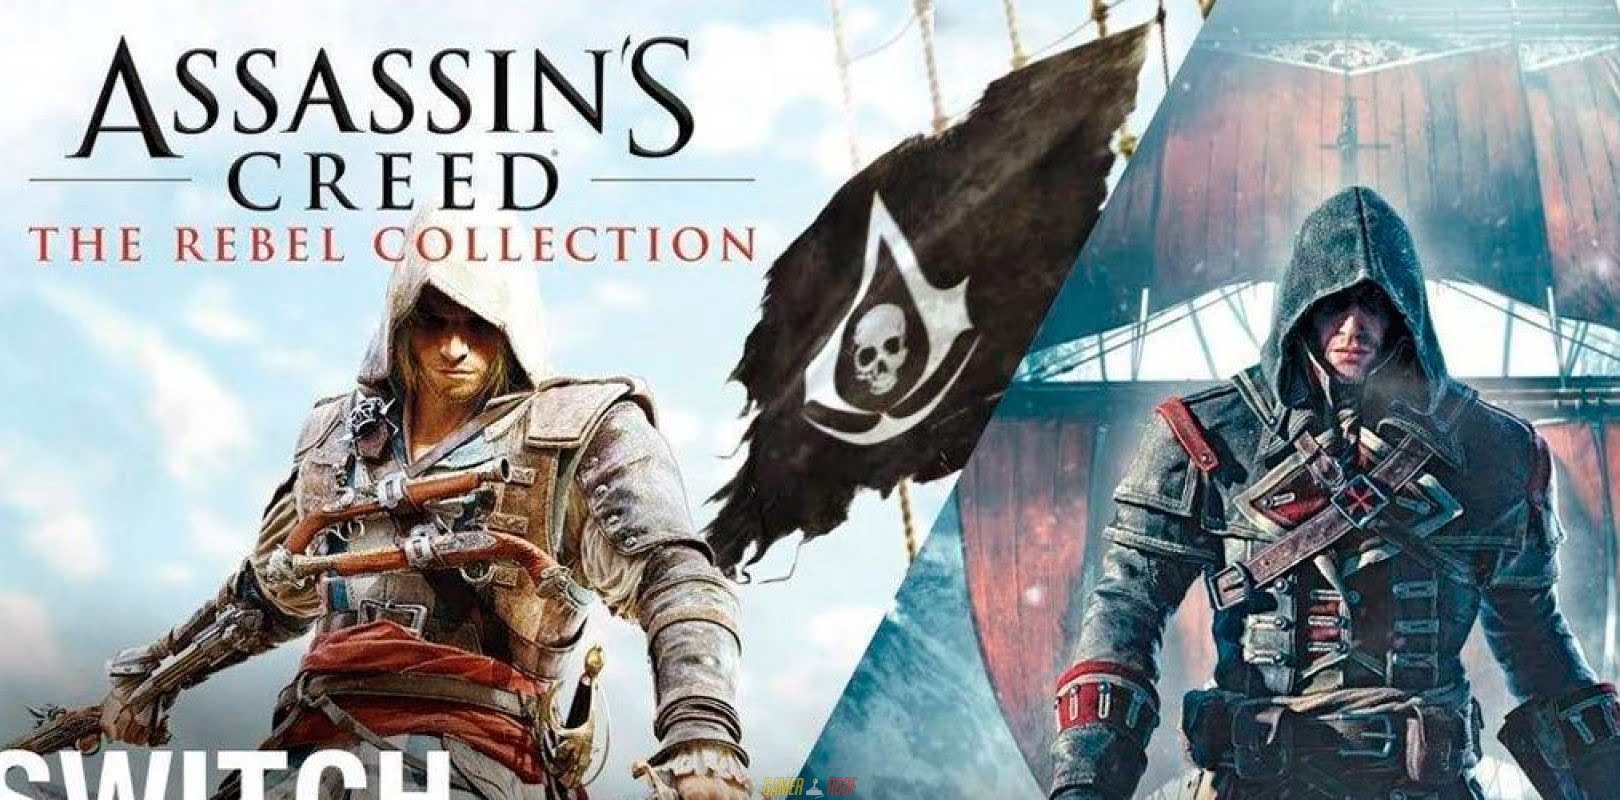 Assassin's Creed The Rebel Collection PS4 Version Full Game Free Download